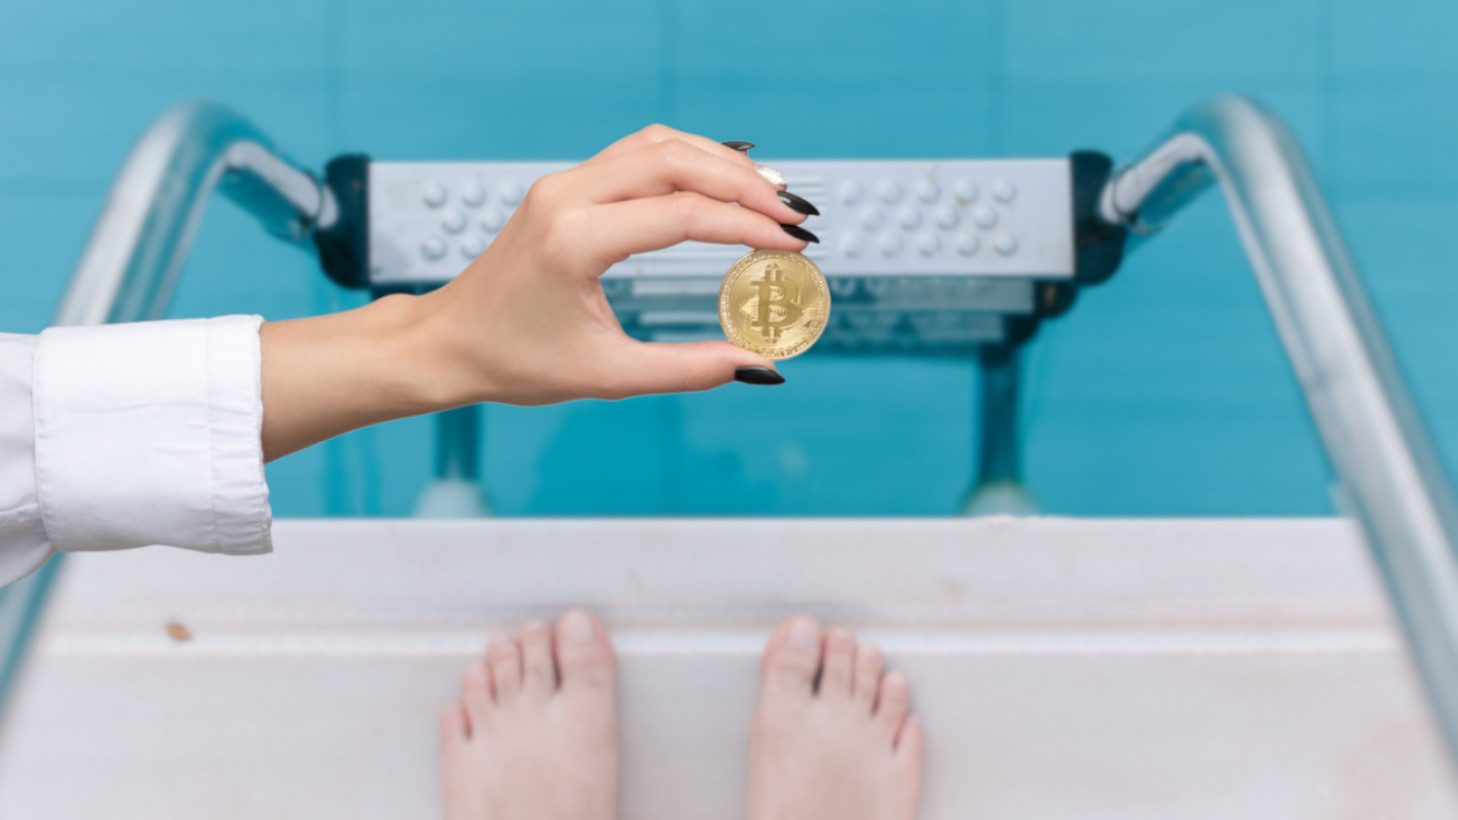 thenextweb.com - Matthew Beedham - An introduction to Bitcoin and cryptocurrency mining pools